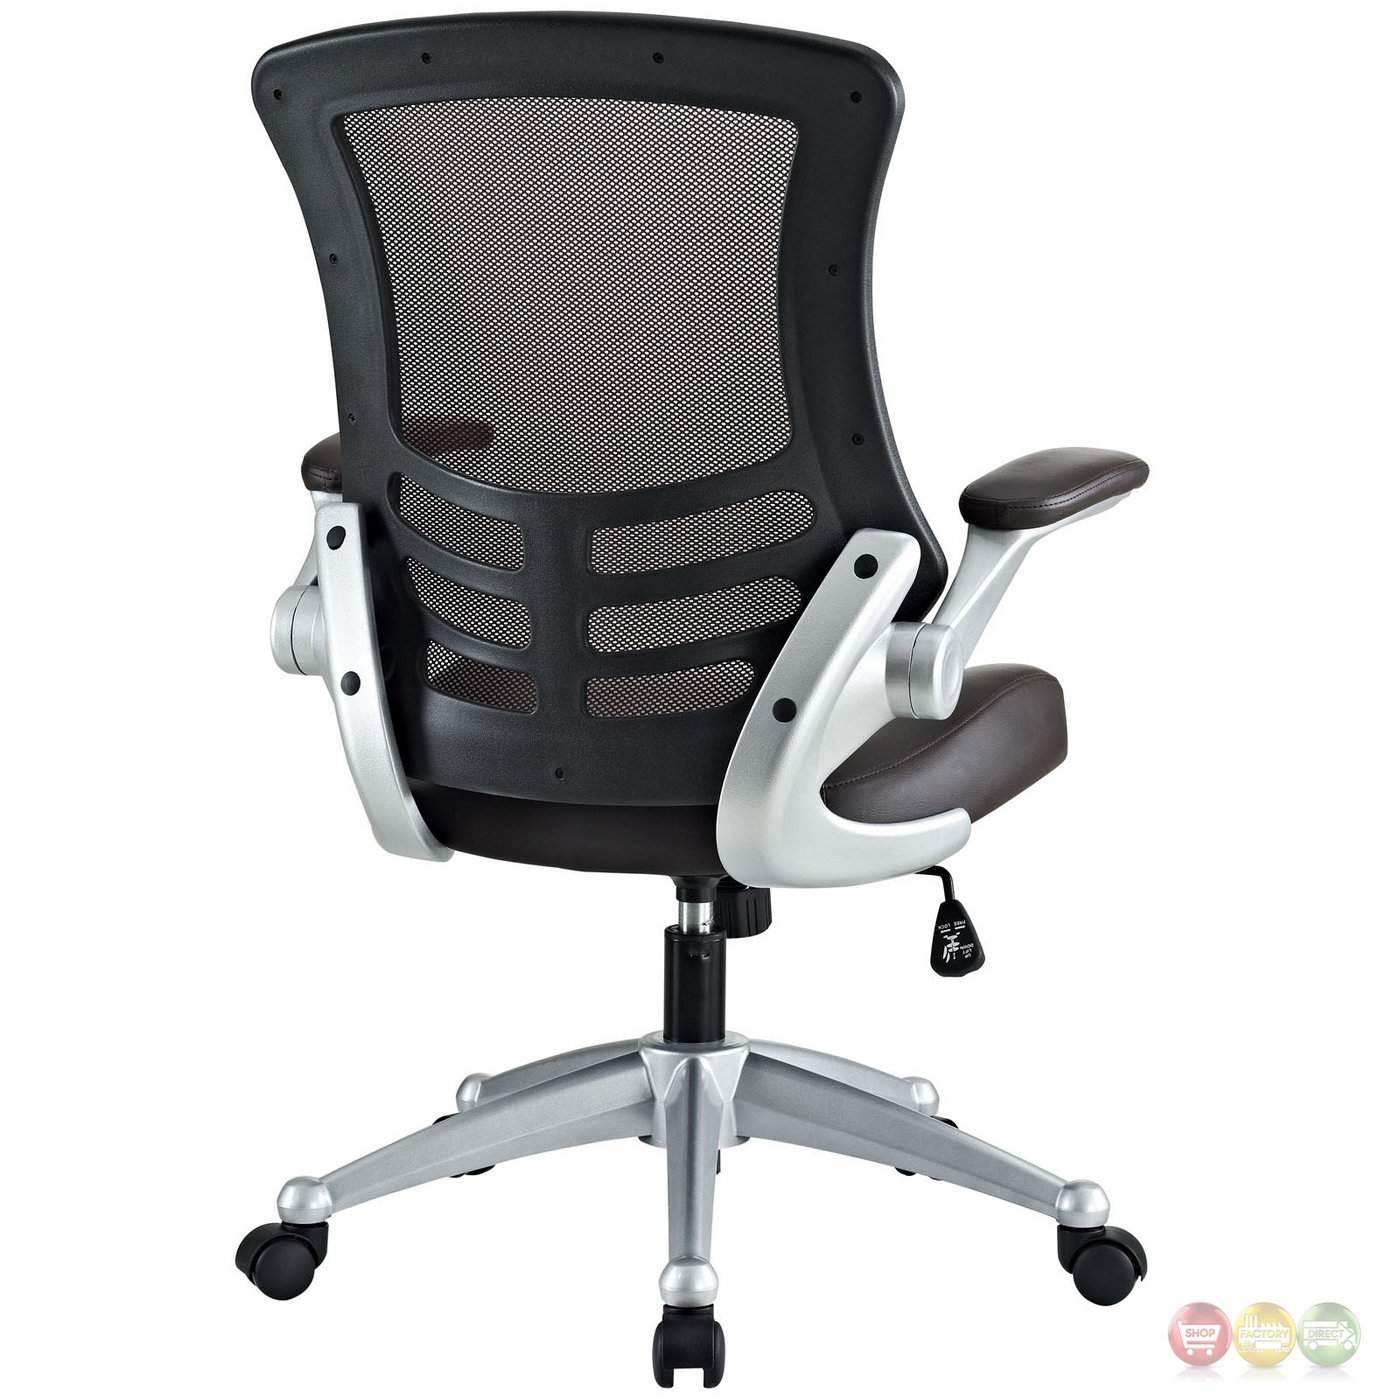 chair lumbar support cover hire midlands attainment modern ergonomic mesh back office w